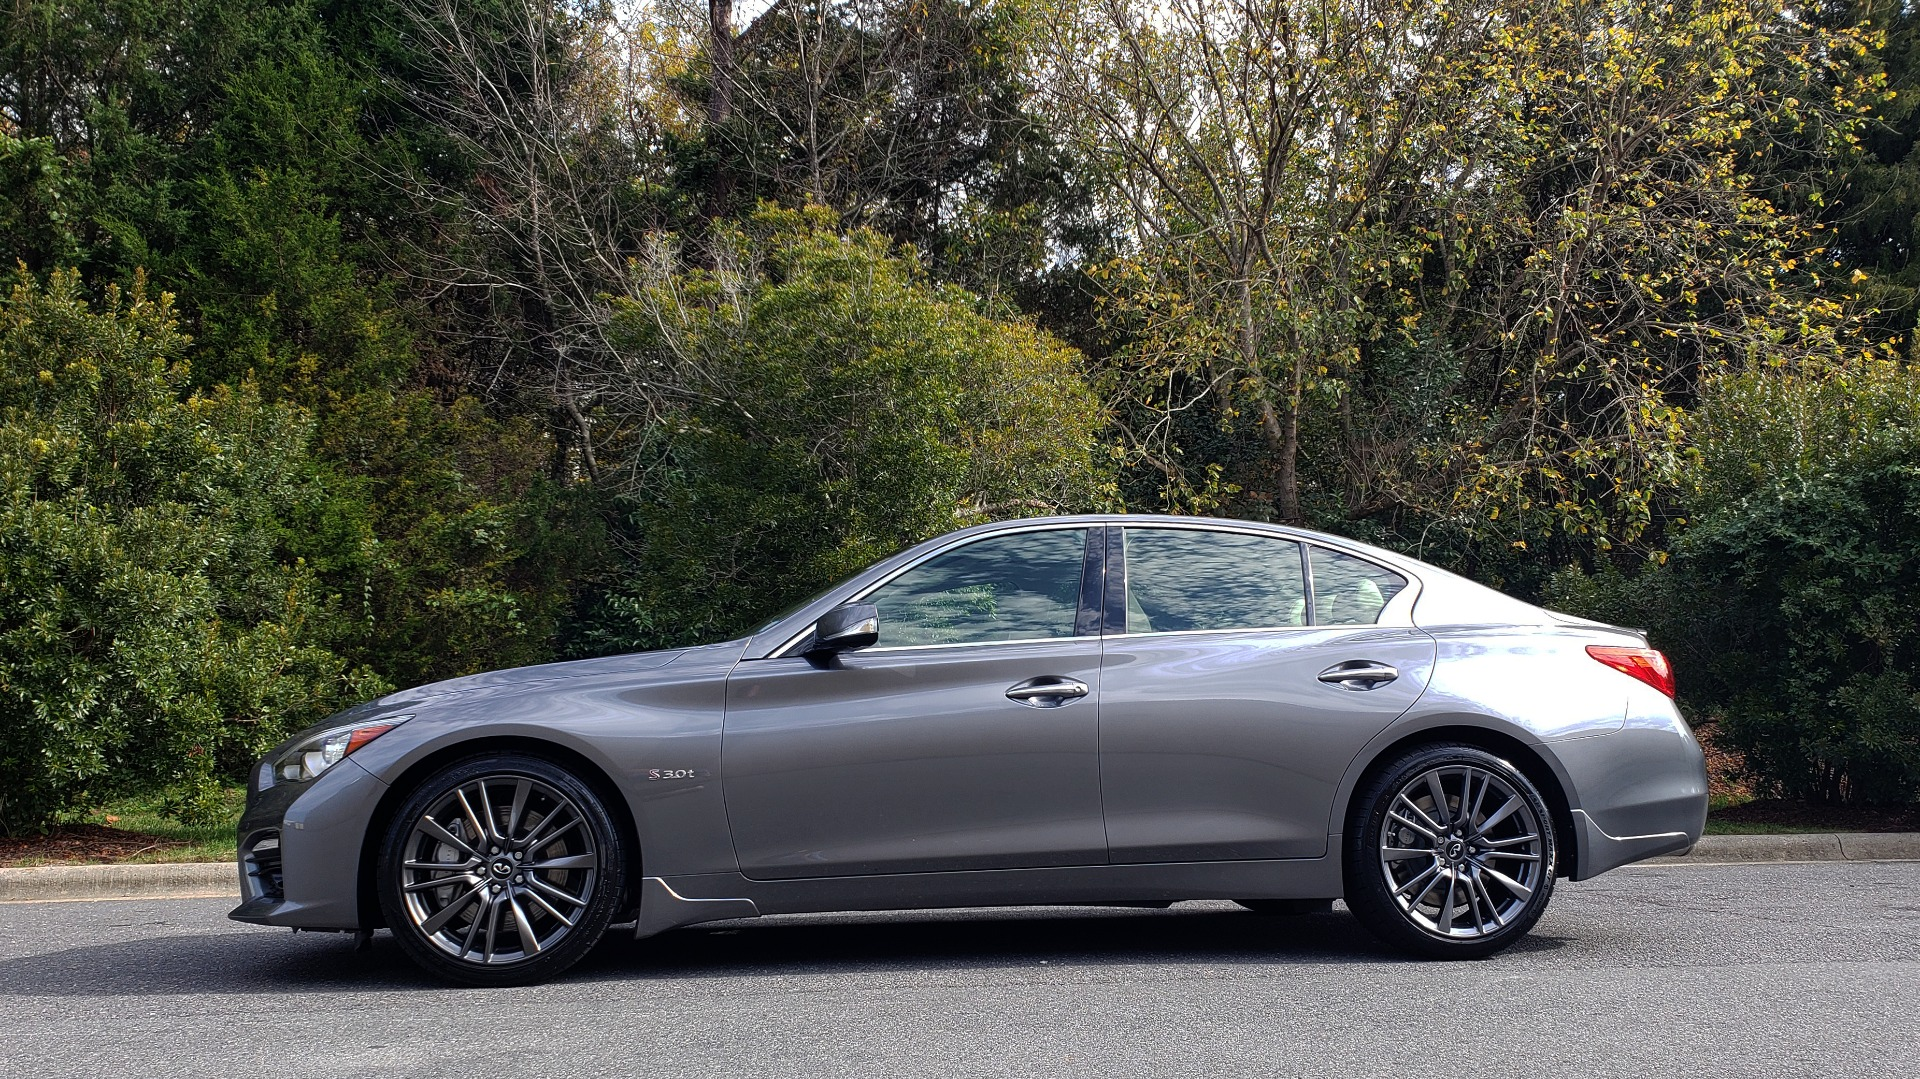 Used 2016 INFINITI Q50 3.0T RED SPORT 400 / NAV / PREM PLUS / BLIND SPOT / REARVIEW for sale $28,495 at Formula Imports in Charlotte NC 28227 2